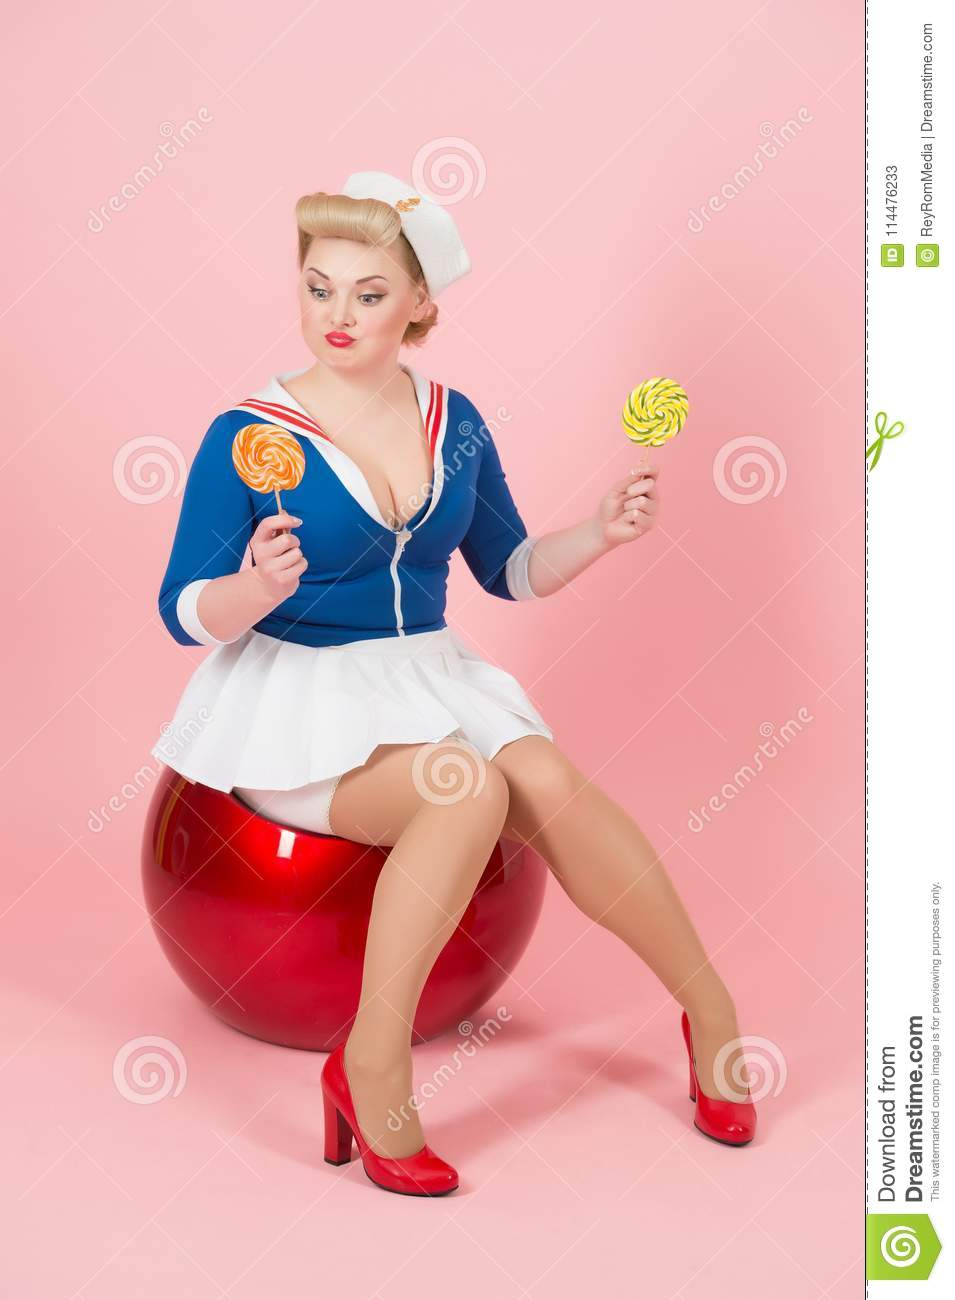 Woman in pin-up style sitting on the red ball with two lollipops